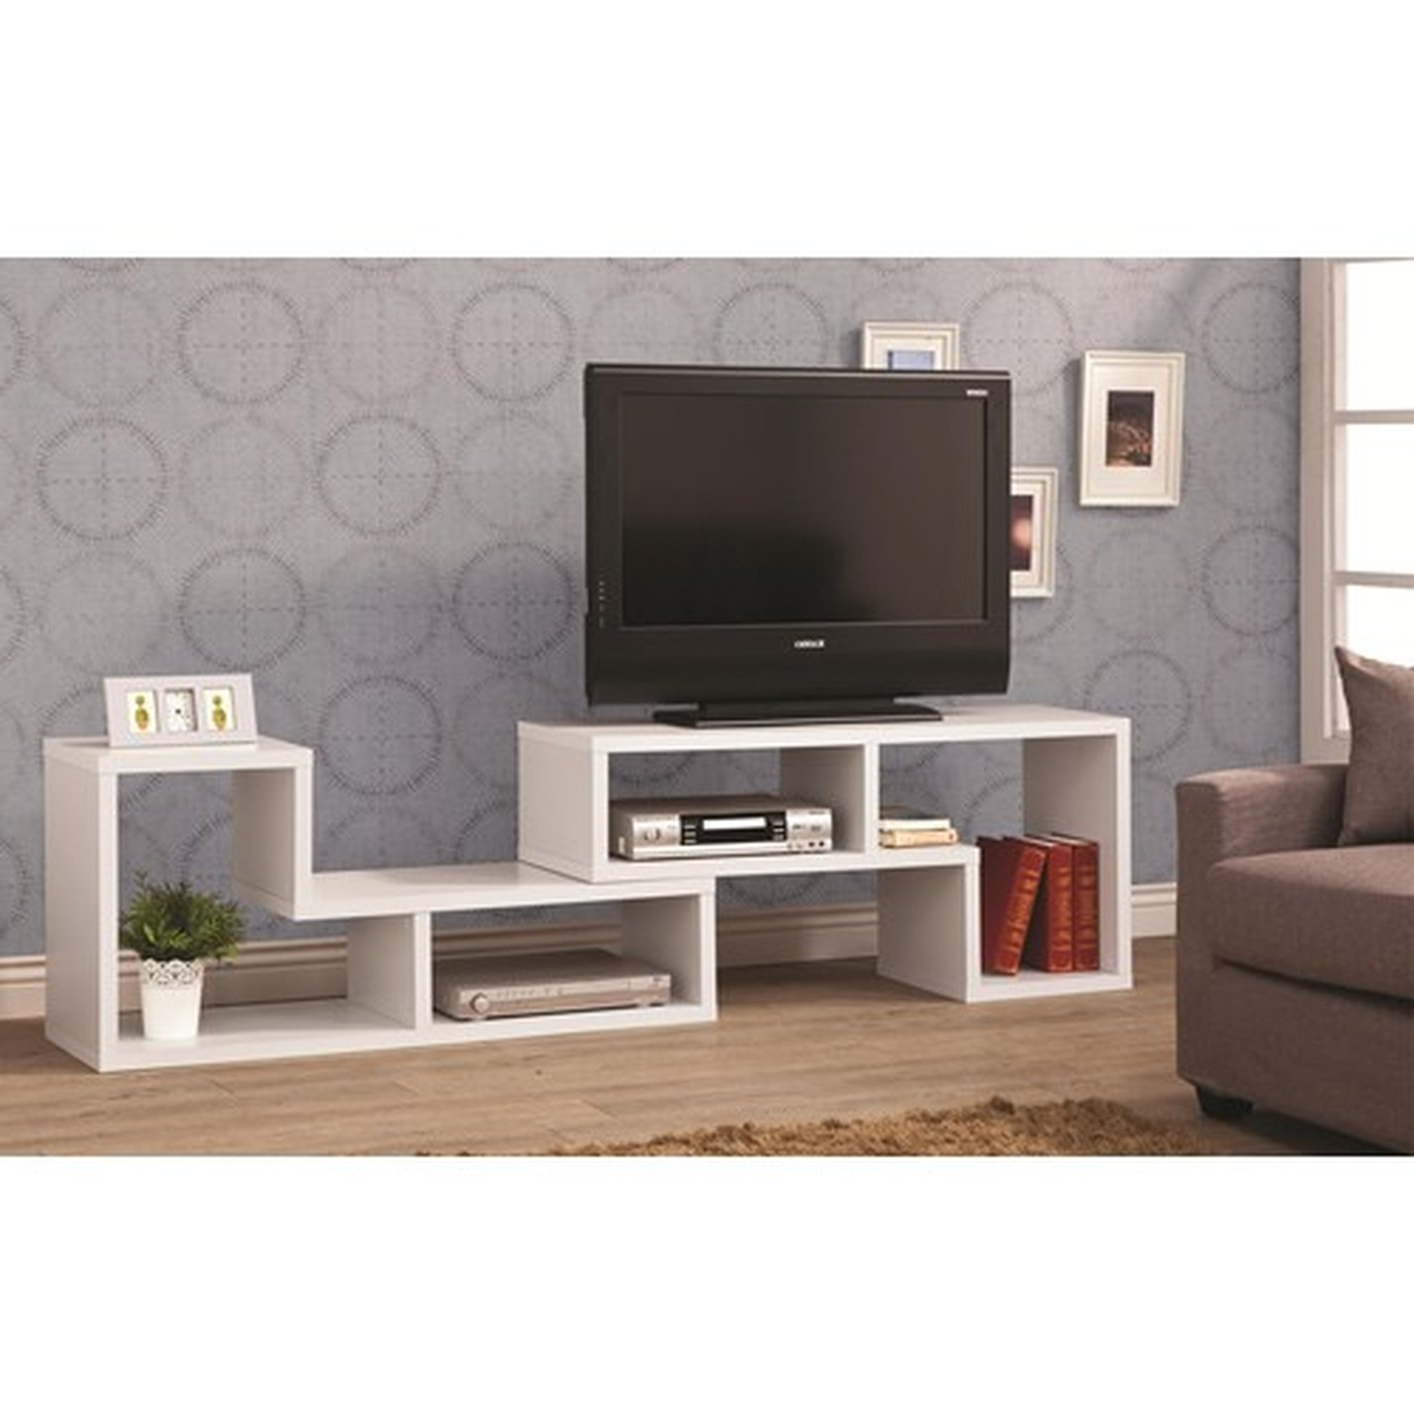 Cheap Wooden Tv Stands (View 11 of 20)